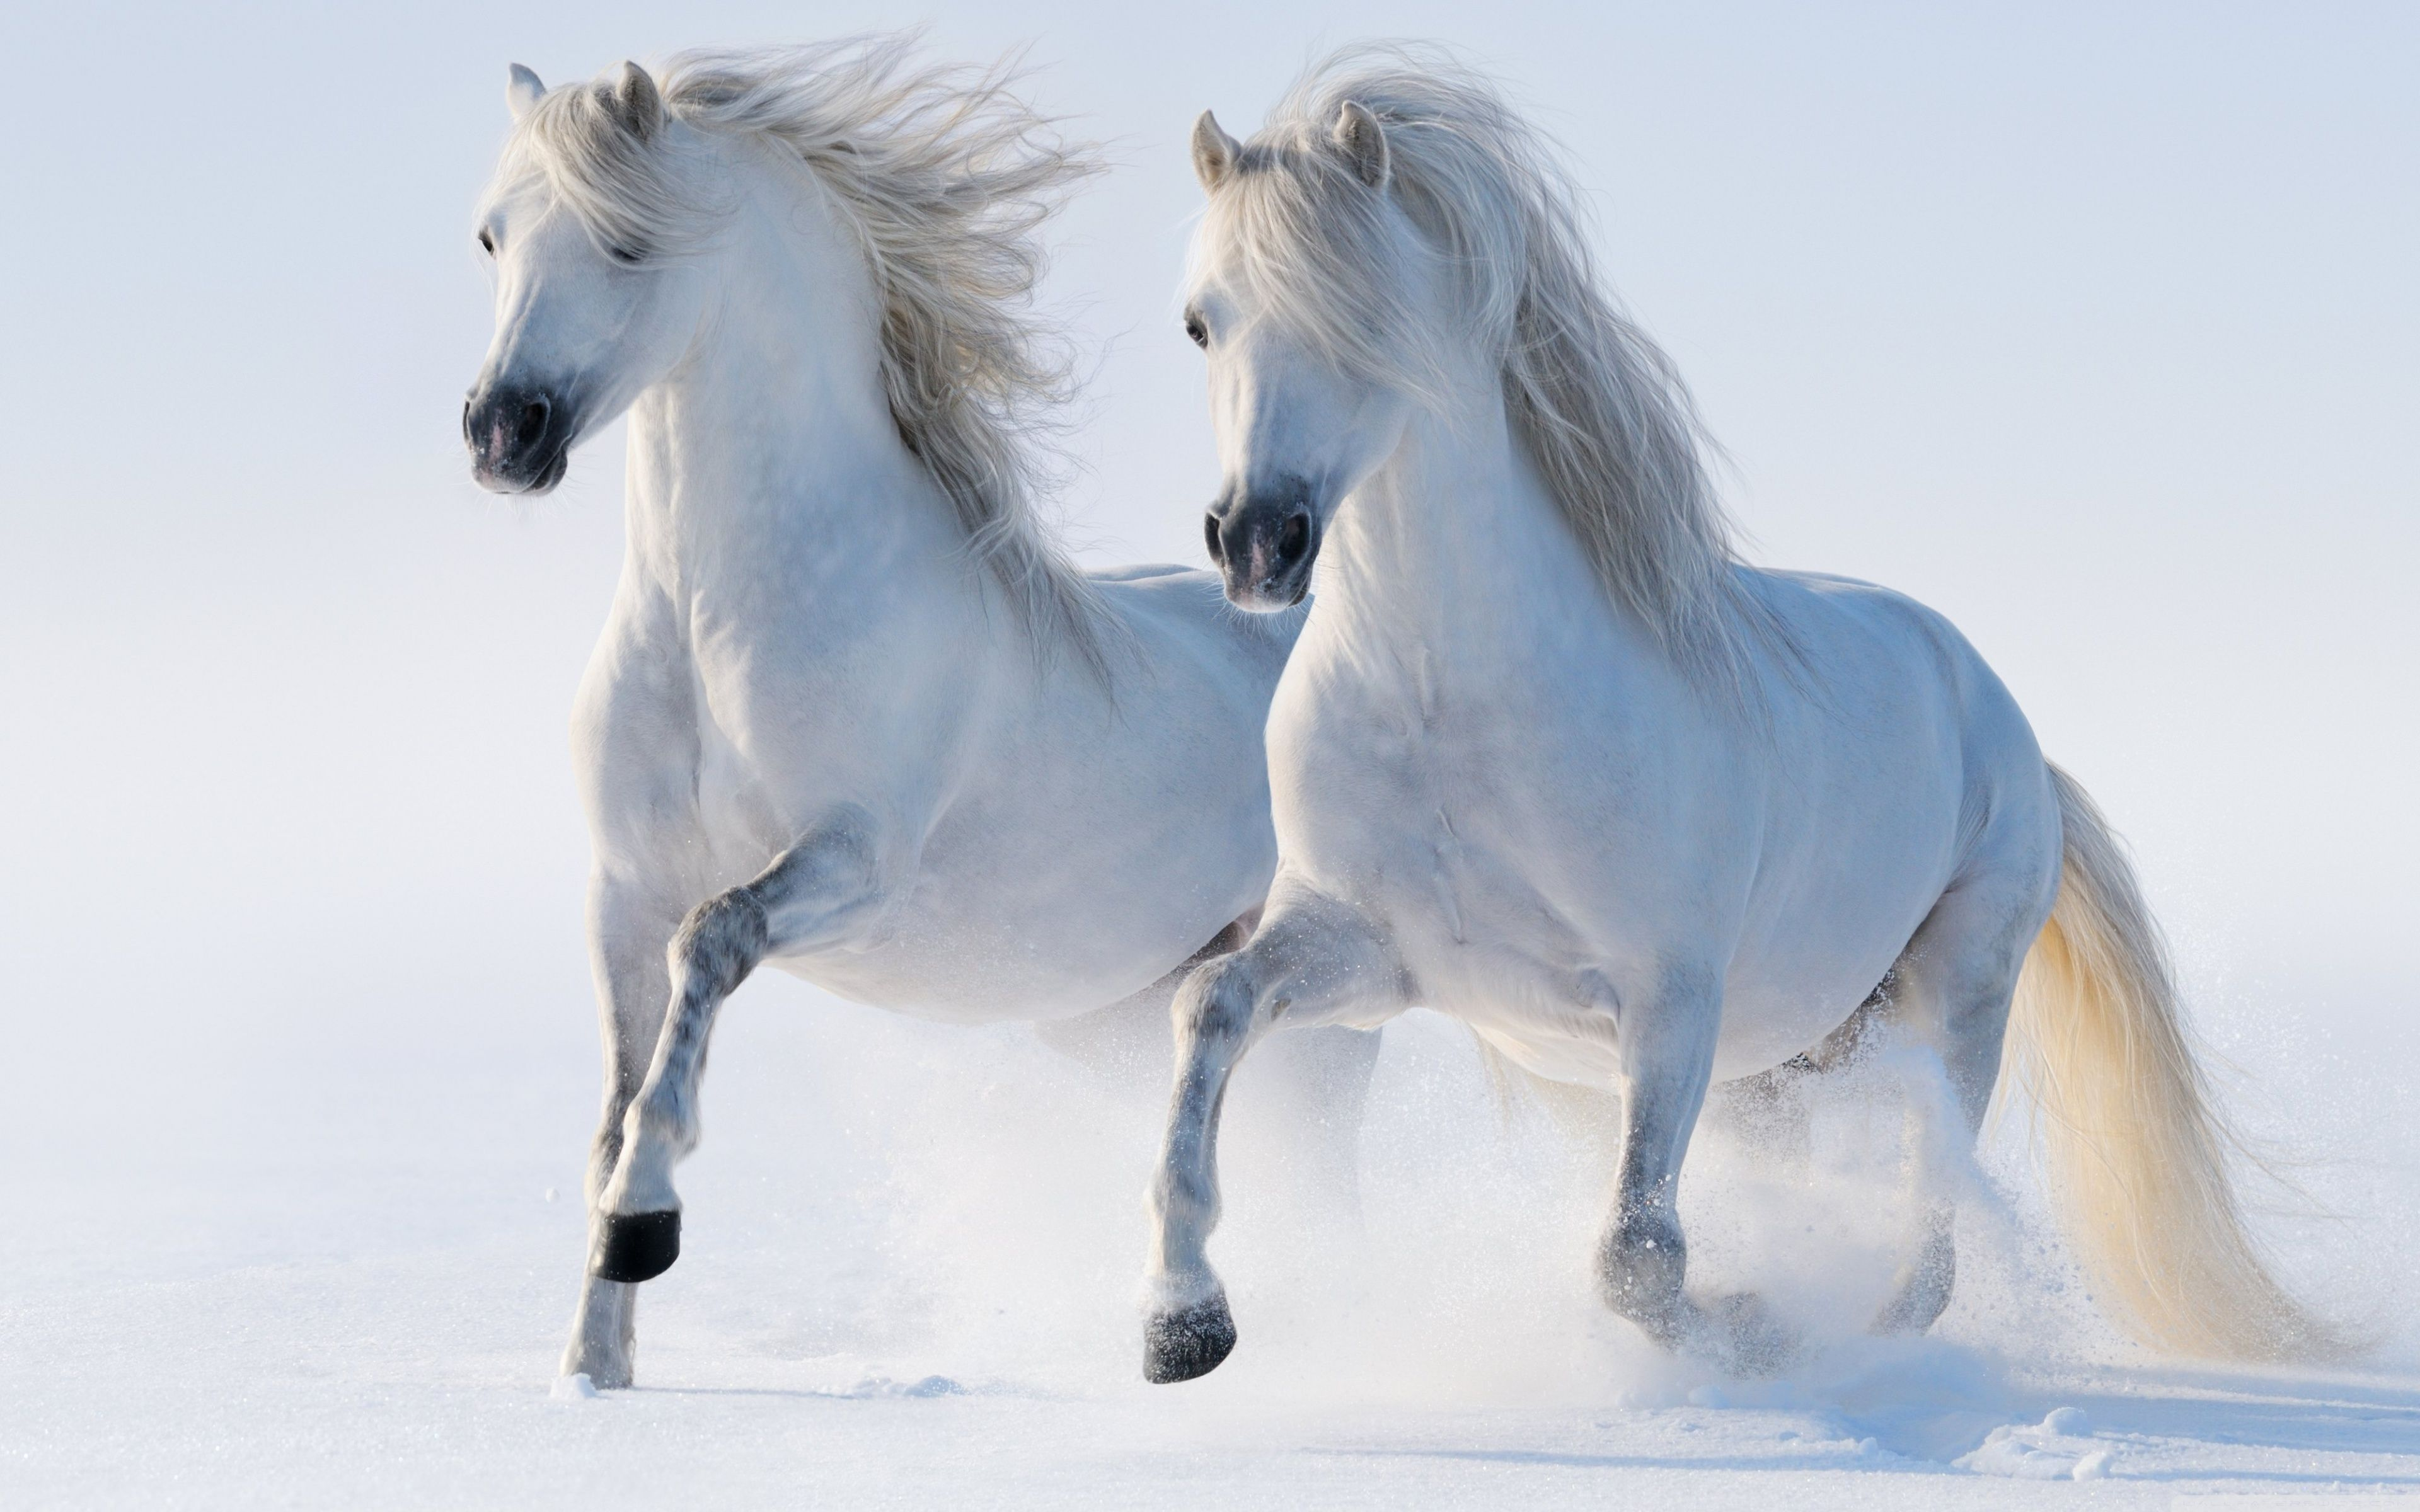 Horses Hd Desktop Wallpapers For Widescreen High Definition Mobile Page 1 White Horses Horses Horse Wallpaper